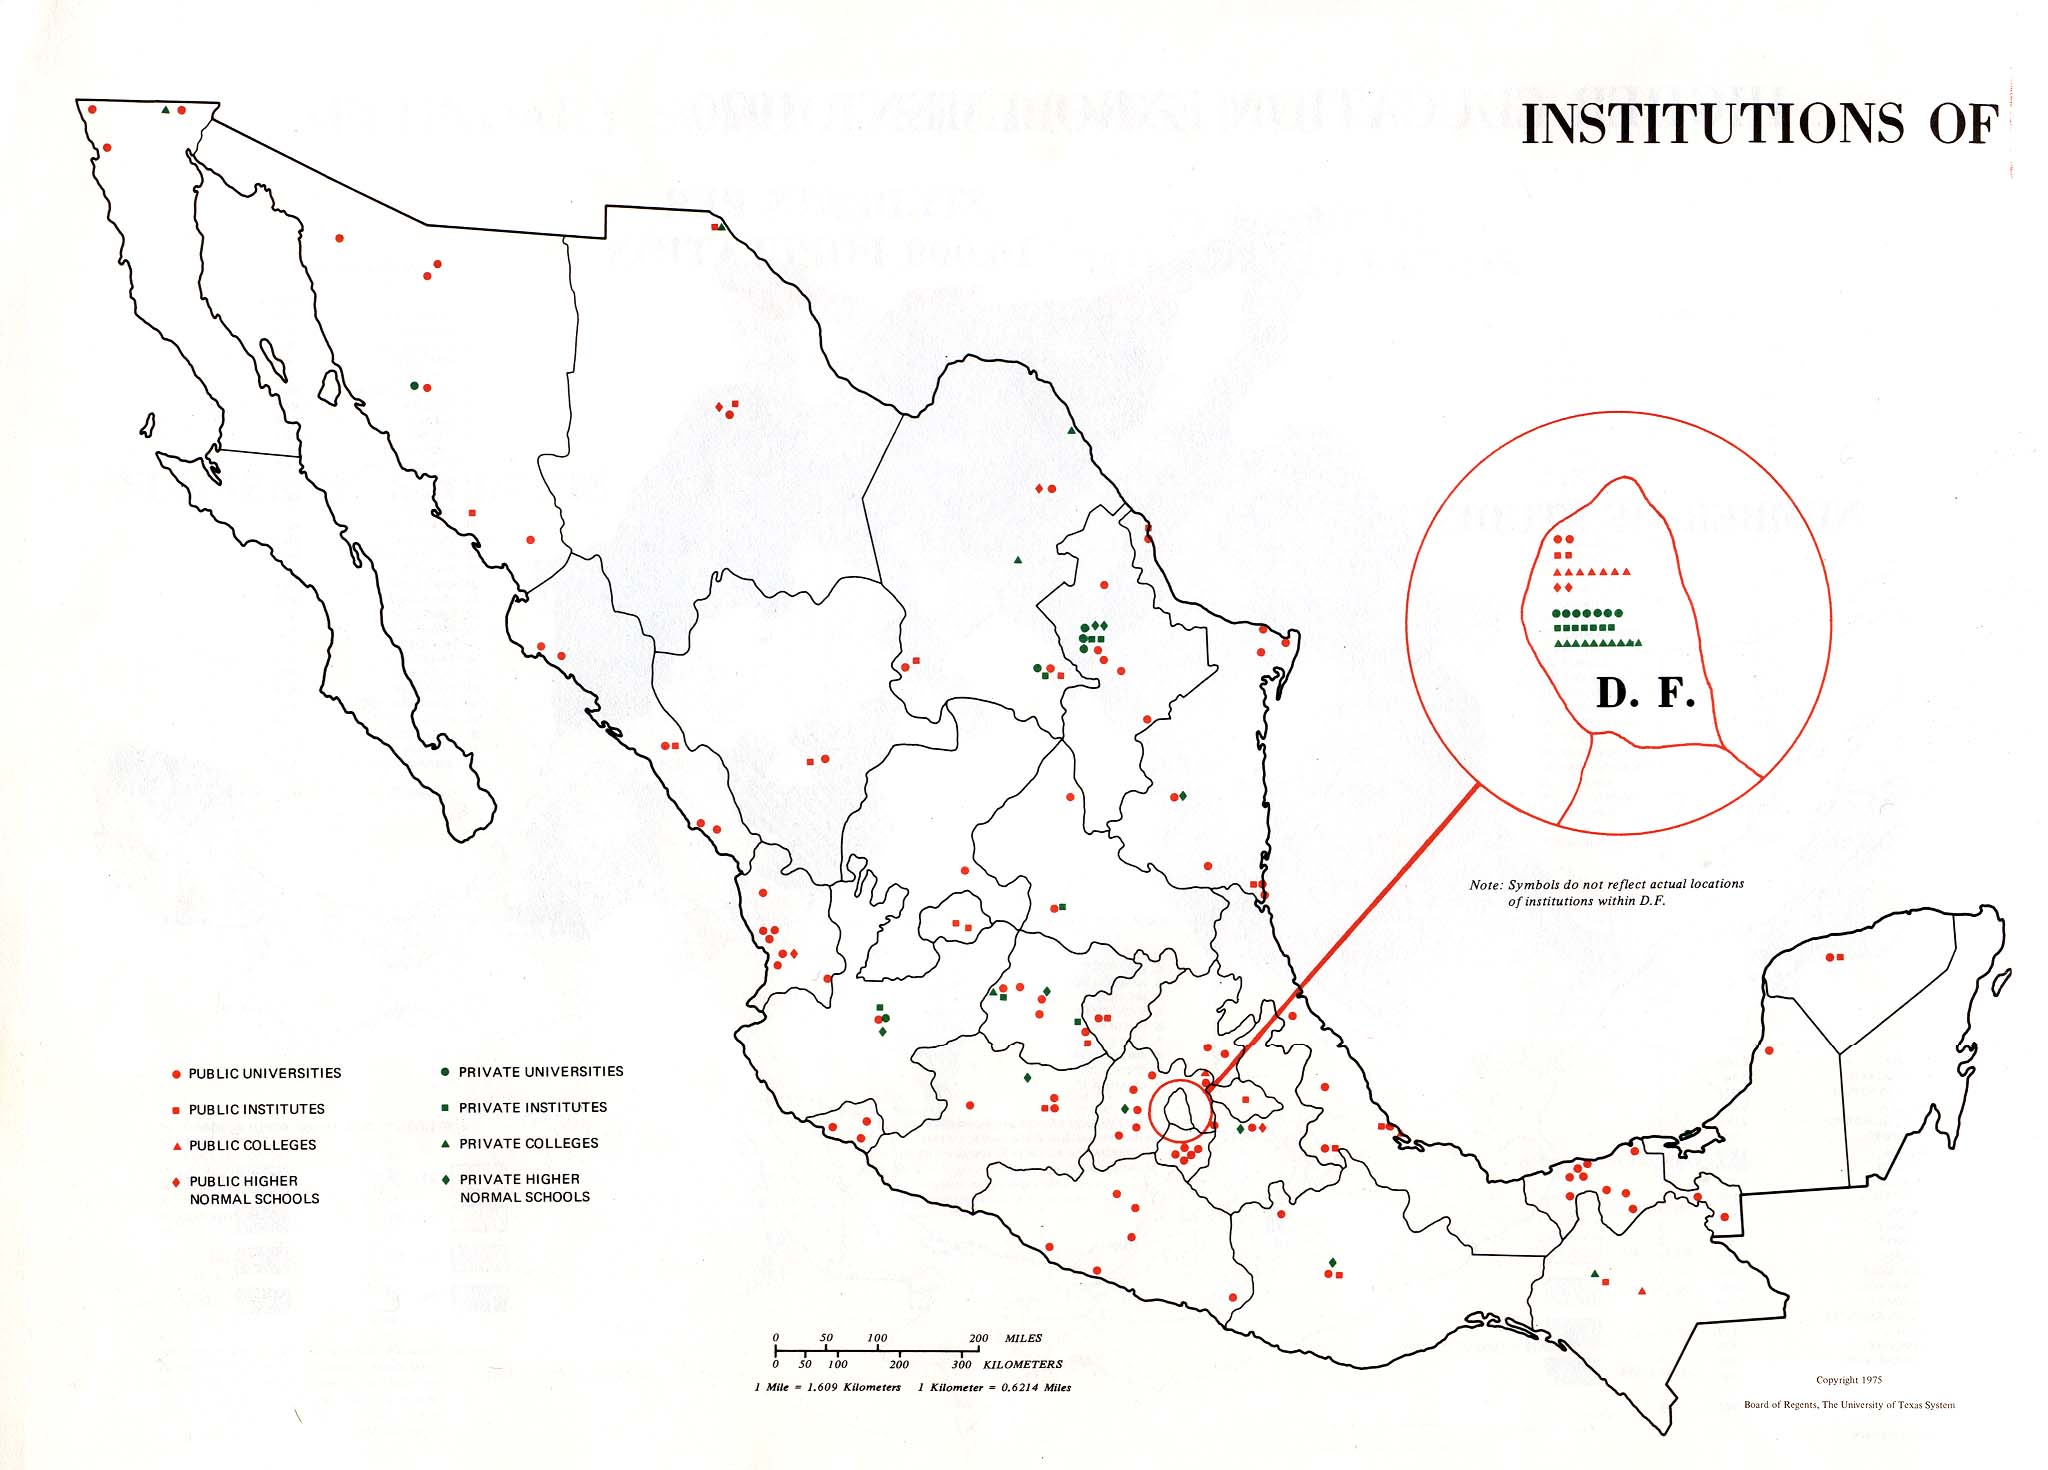 Institutions of Higher Learning Map, Mexico